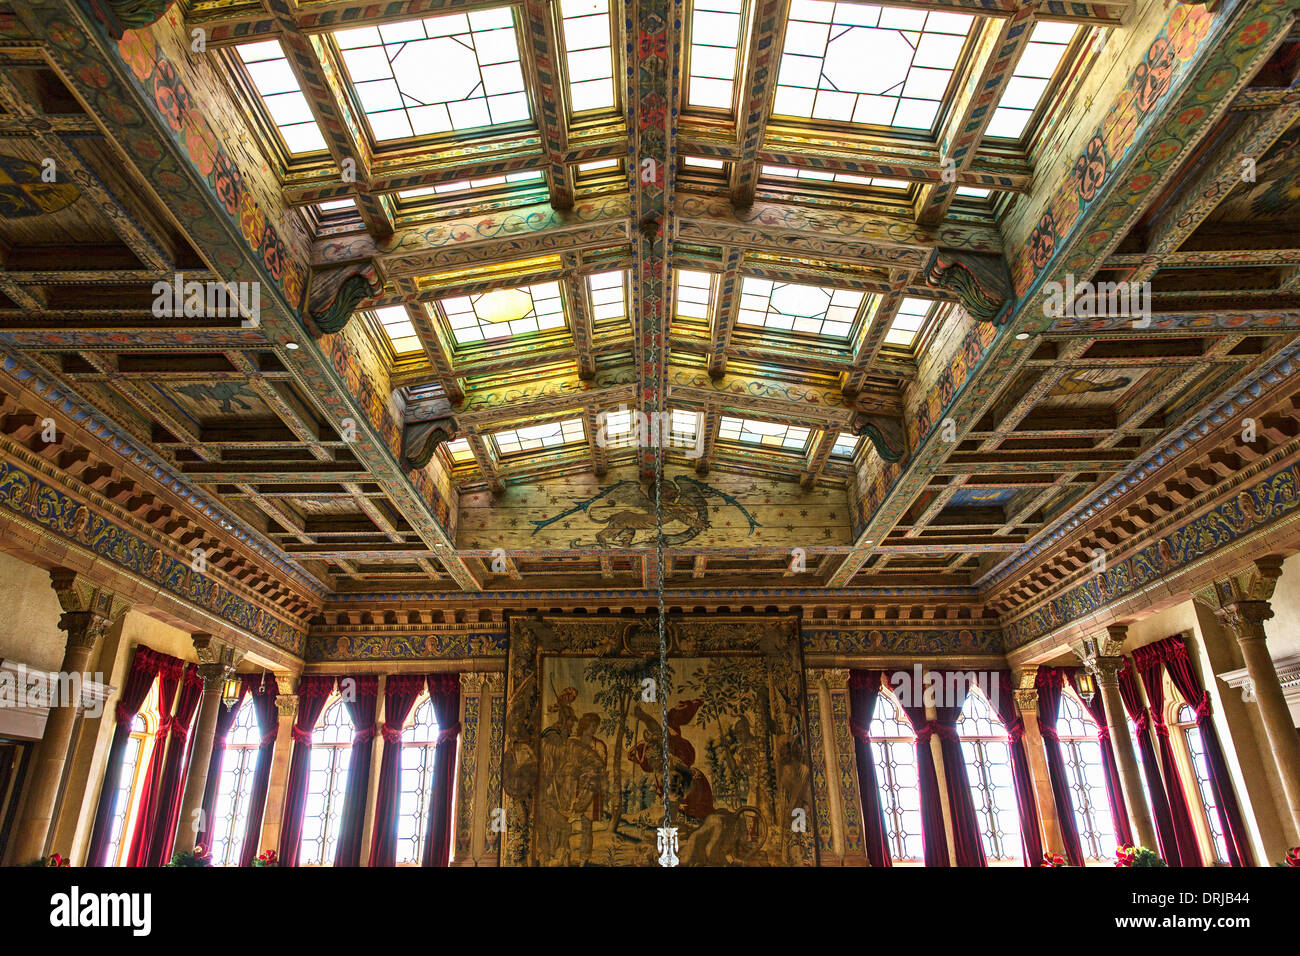 USA,Florida,Sarasota, The John and Mable Ringling Museum of Art, detail of ceiling in the main room, Venetian architecture - Stock Image